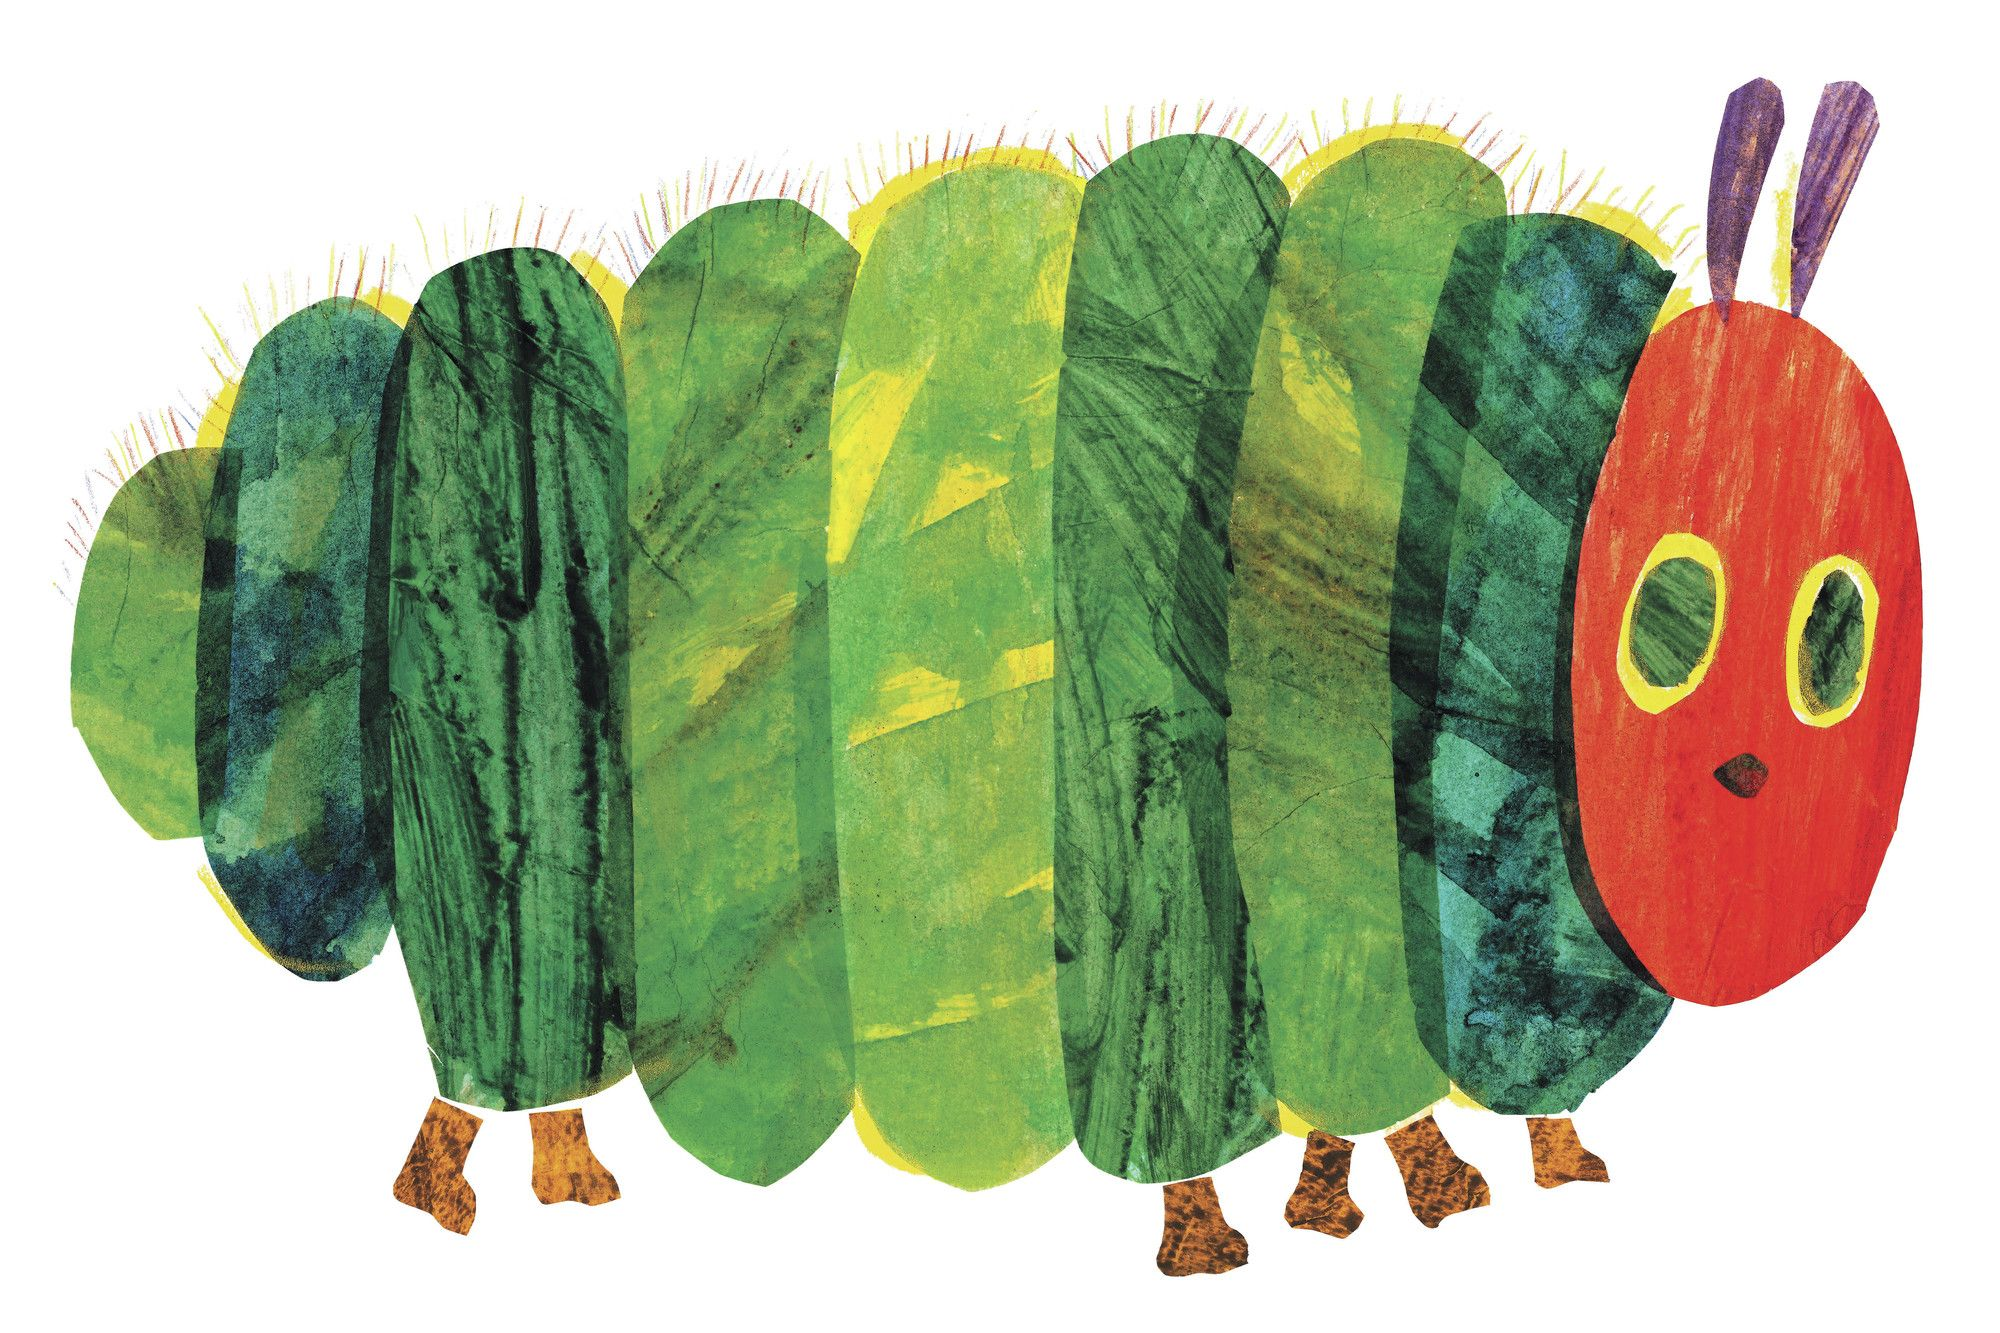 the very hungry caterpillar character caterpillar fat by eric carle painting print on wrapped canvas [ 2000 x 1333 Pixel ]